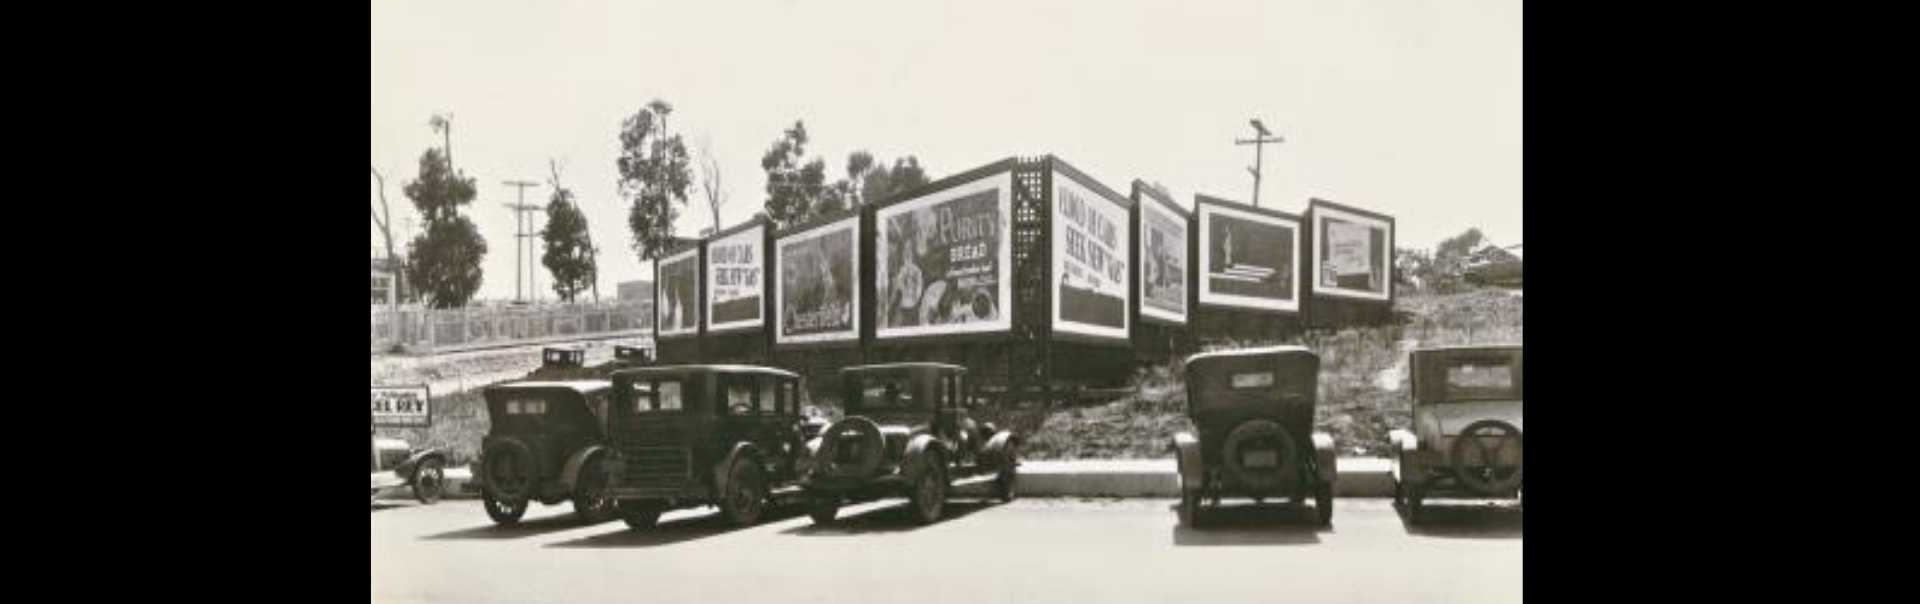 Billboards and Cars at the Corner of Main Street and El Segundo Boulevard 1935